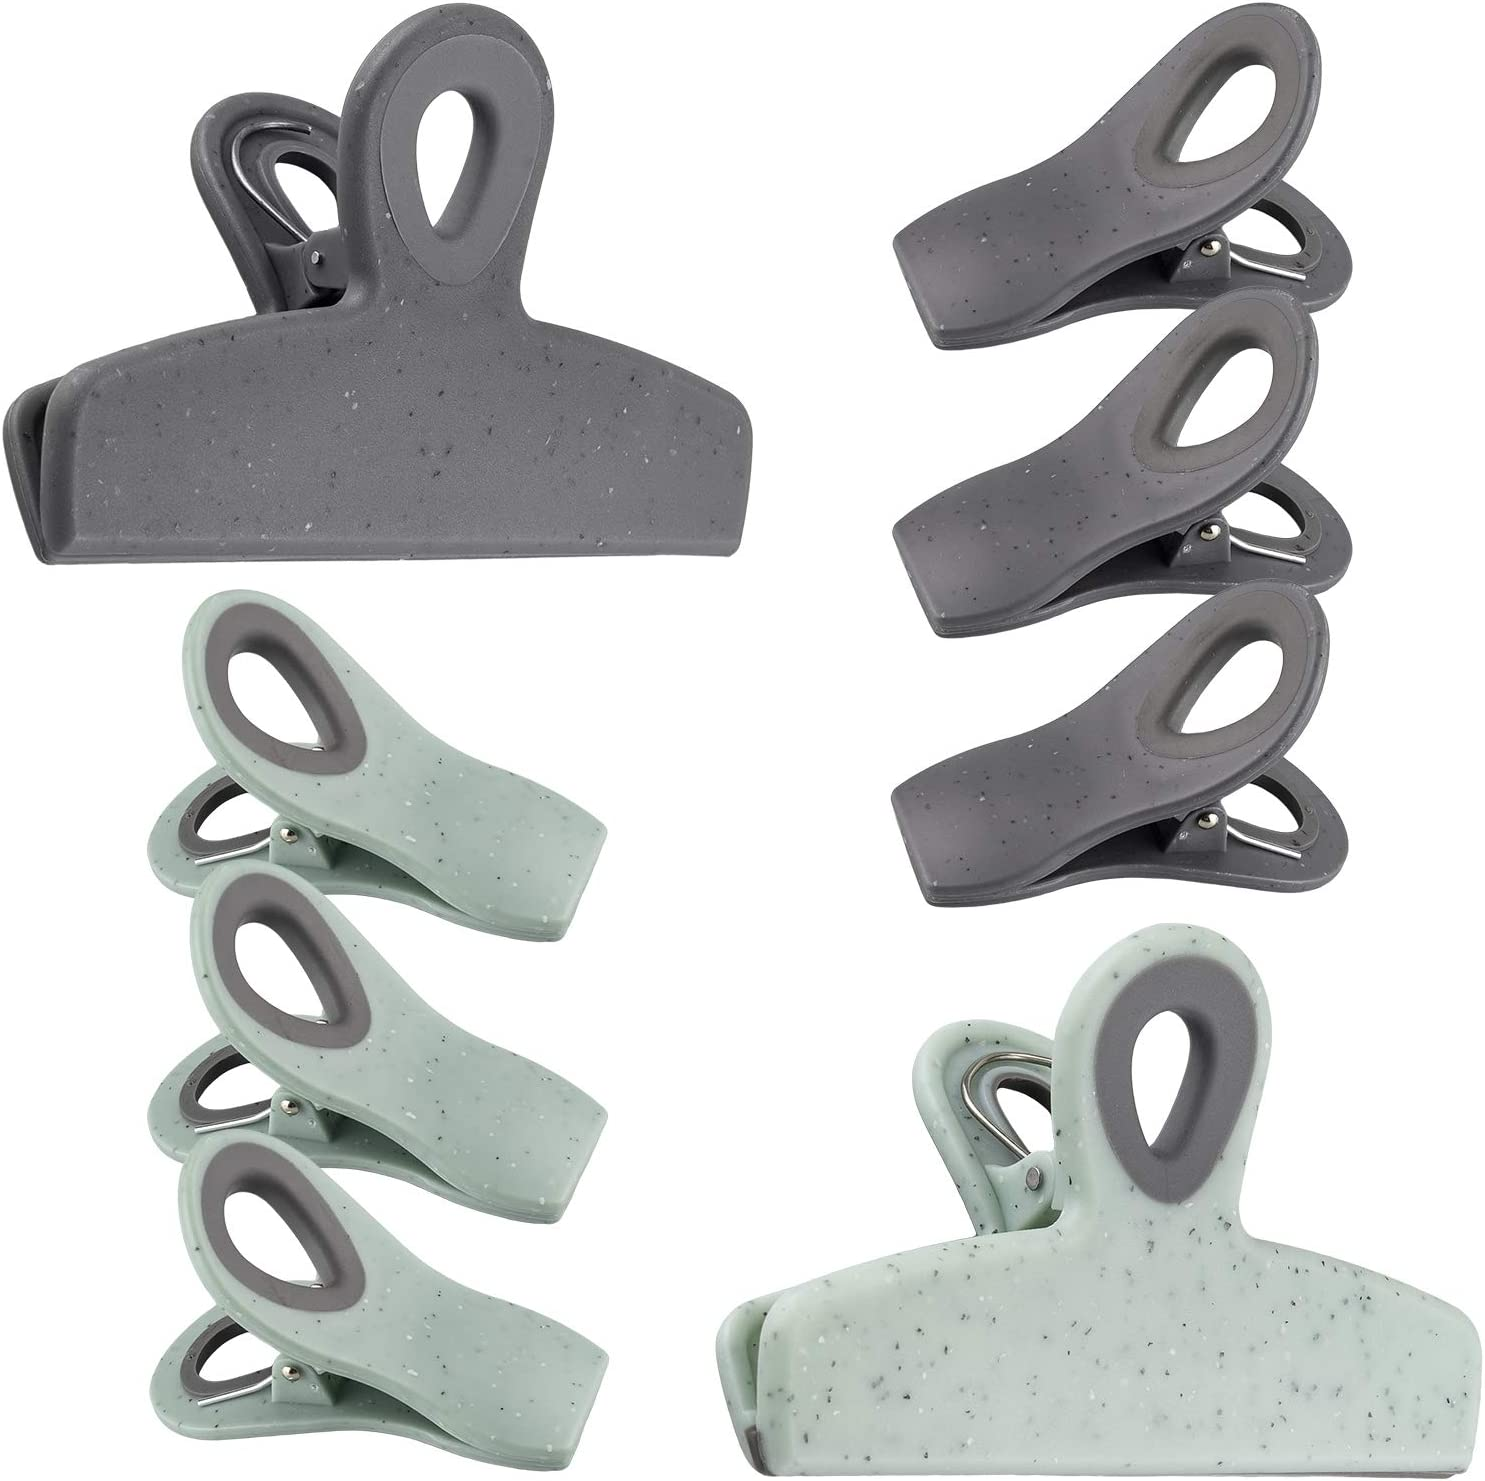 Cook with Color Set of Eight Bag Clips, 2 Large Heavy Duty Chip Clips and 6 Refrigerator Magnet Clips for Food Storage with Air Tight Seal Grip for Snack Bags and Food Bags (Speckled Gray & Teal)